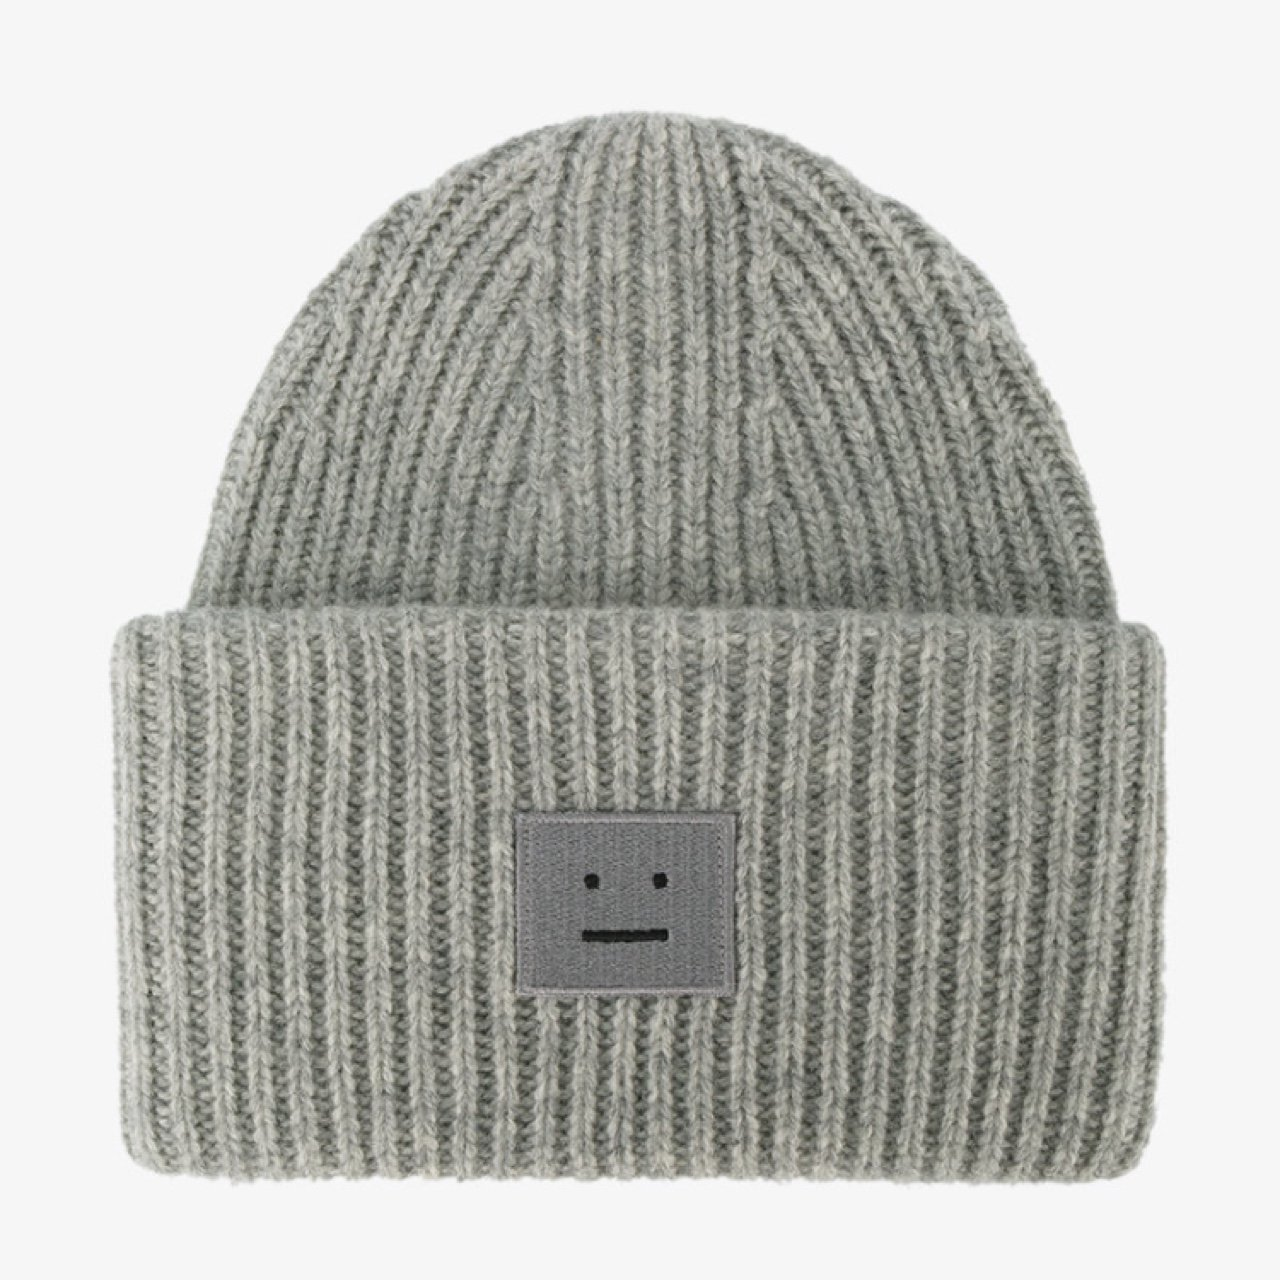 Acne Studios pansy grey wool hat  beanie  acne  wool  hat - Depop 3473e9b06c0